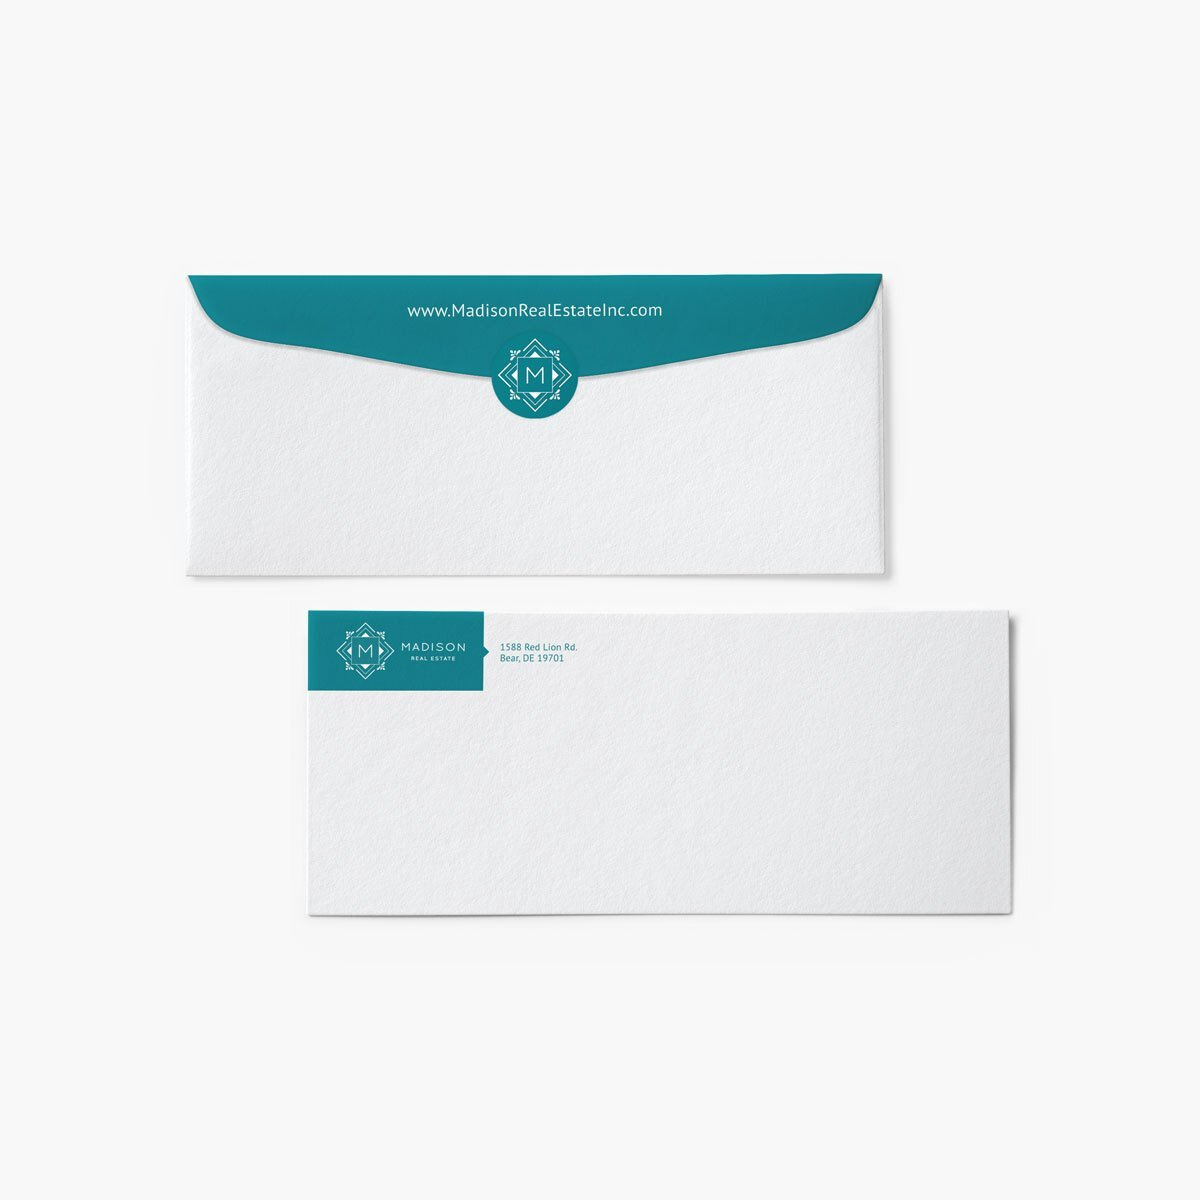 Madison Real Estate Envelope Design by BrandSwan, a graphic design company